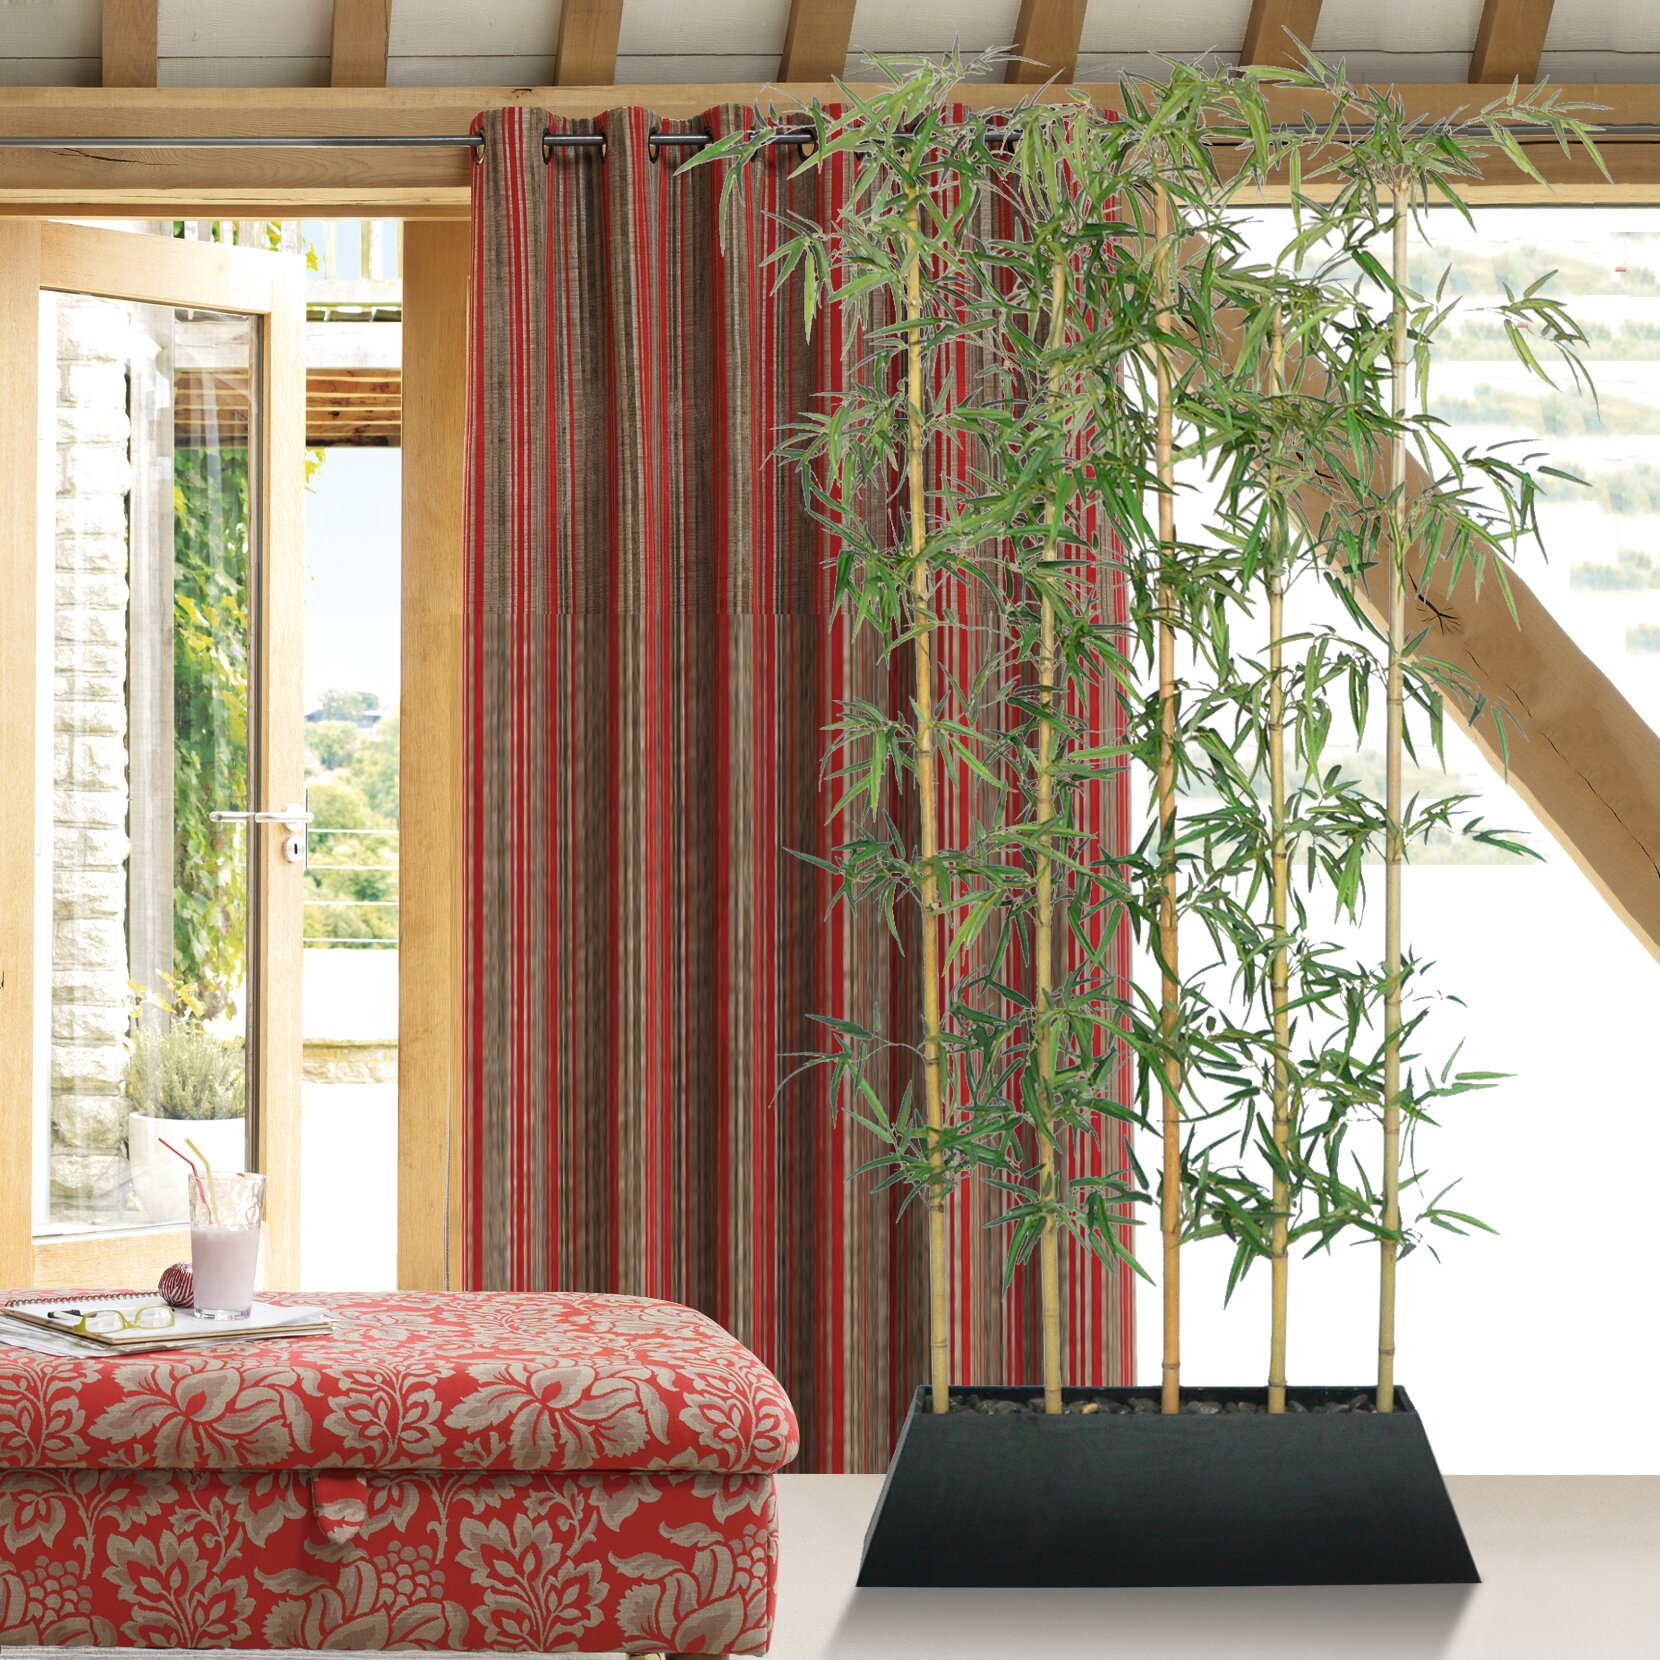 laura ashley home silk bamboo tree in planter reviews wayfair. Black Bedroom Furniture Sets. Home Design Ideas